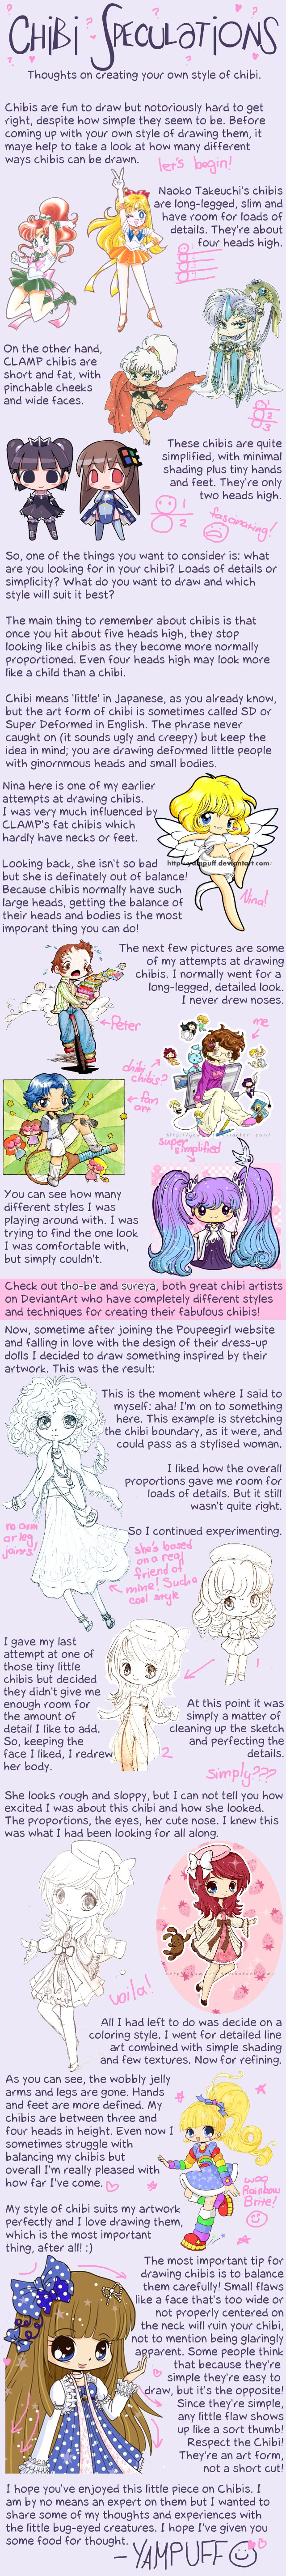 Chibi Speculations by YamPuff